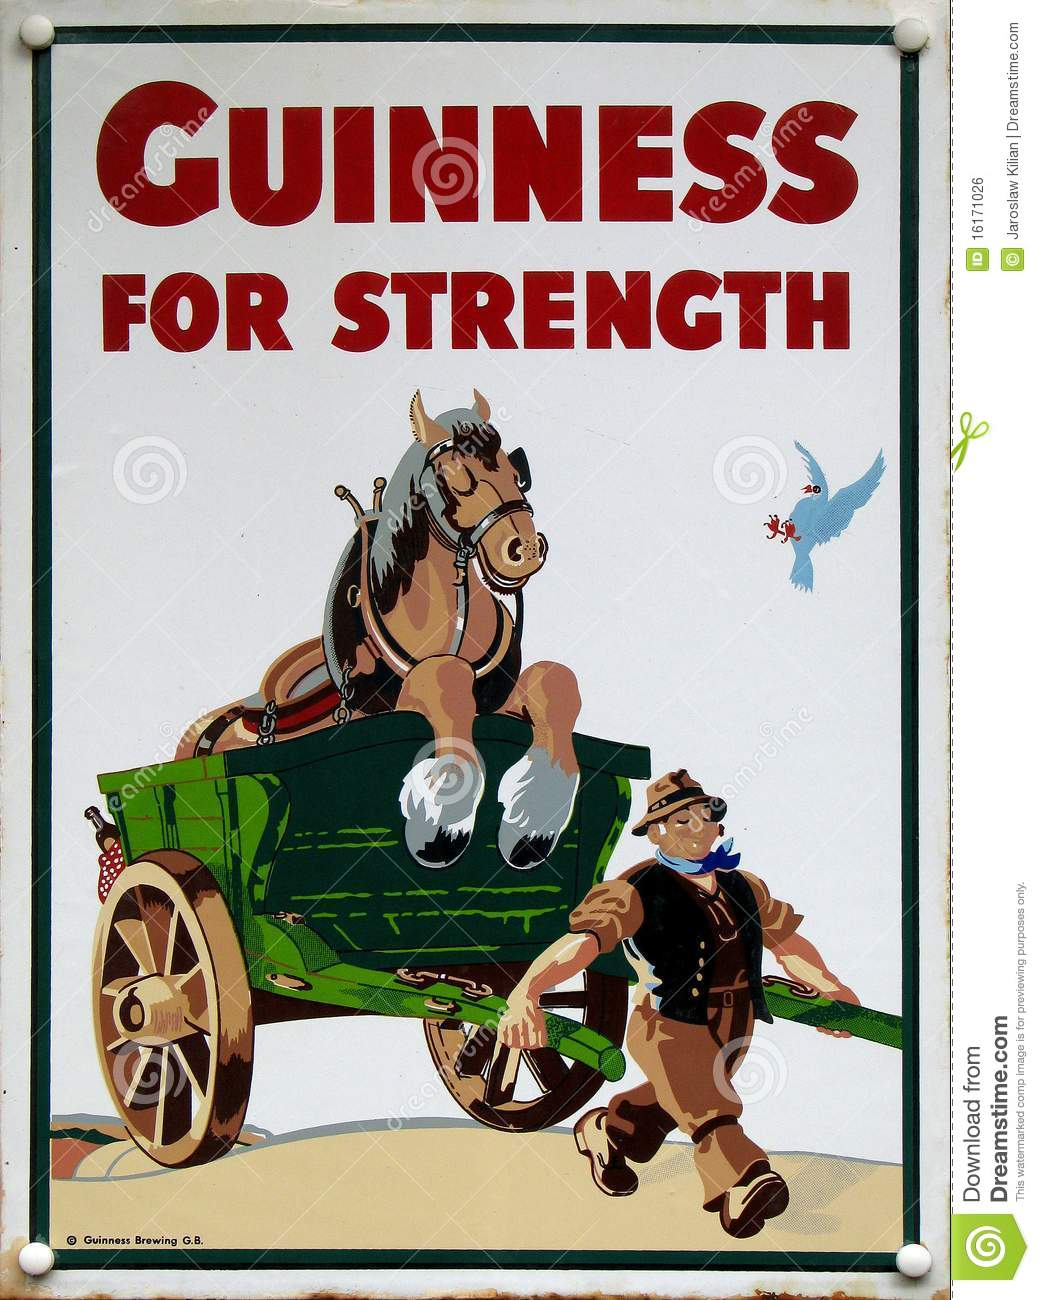 Oude advertentie - Guiness